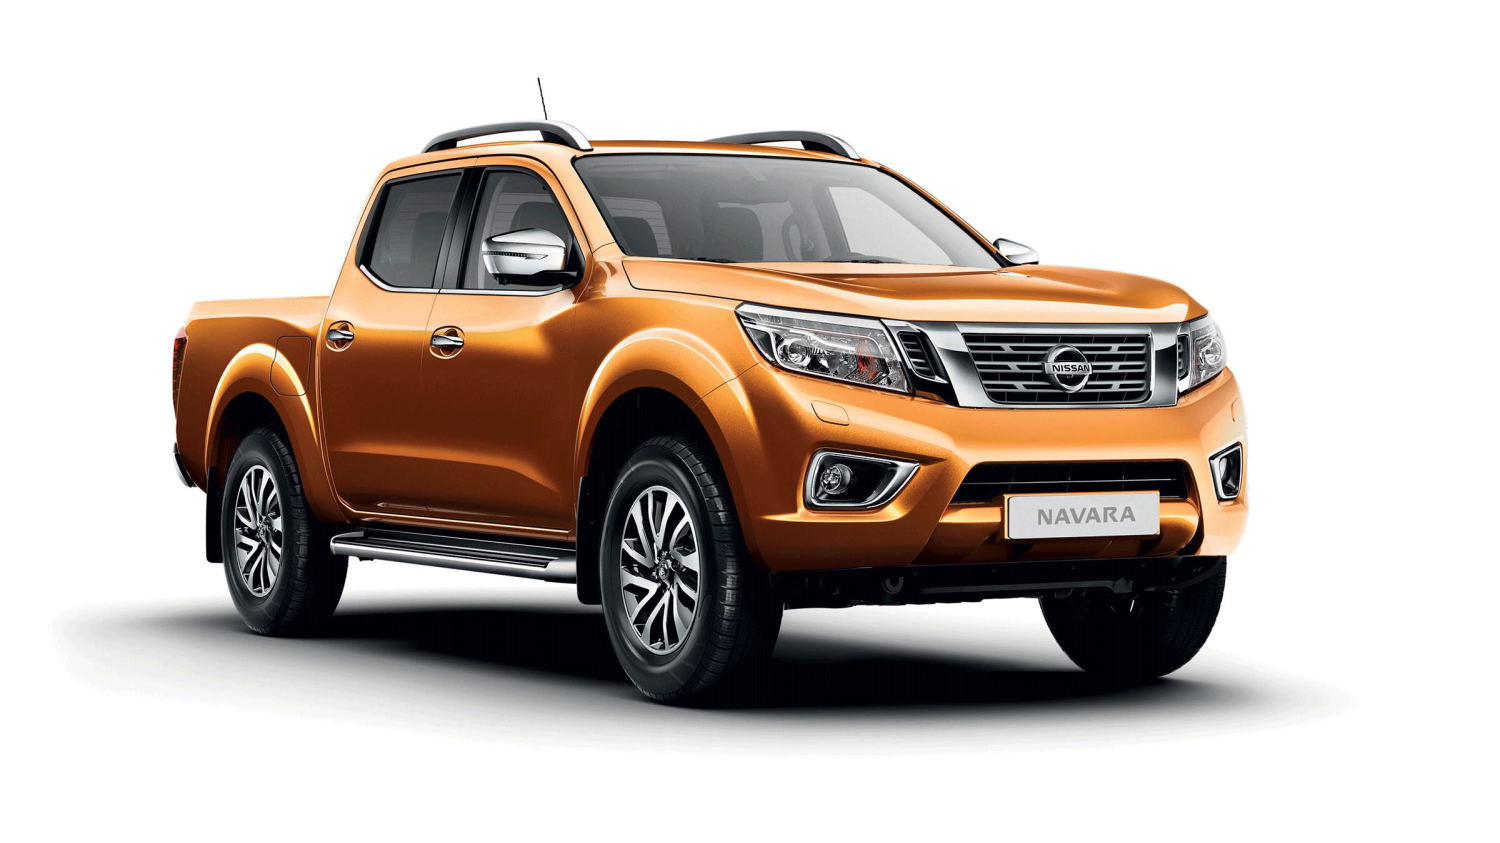 Pick up Nissan NAVARA Earth Bronze - Vista frontal estática